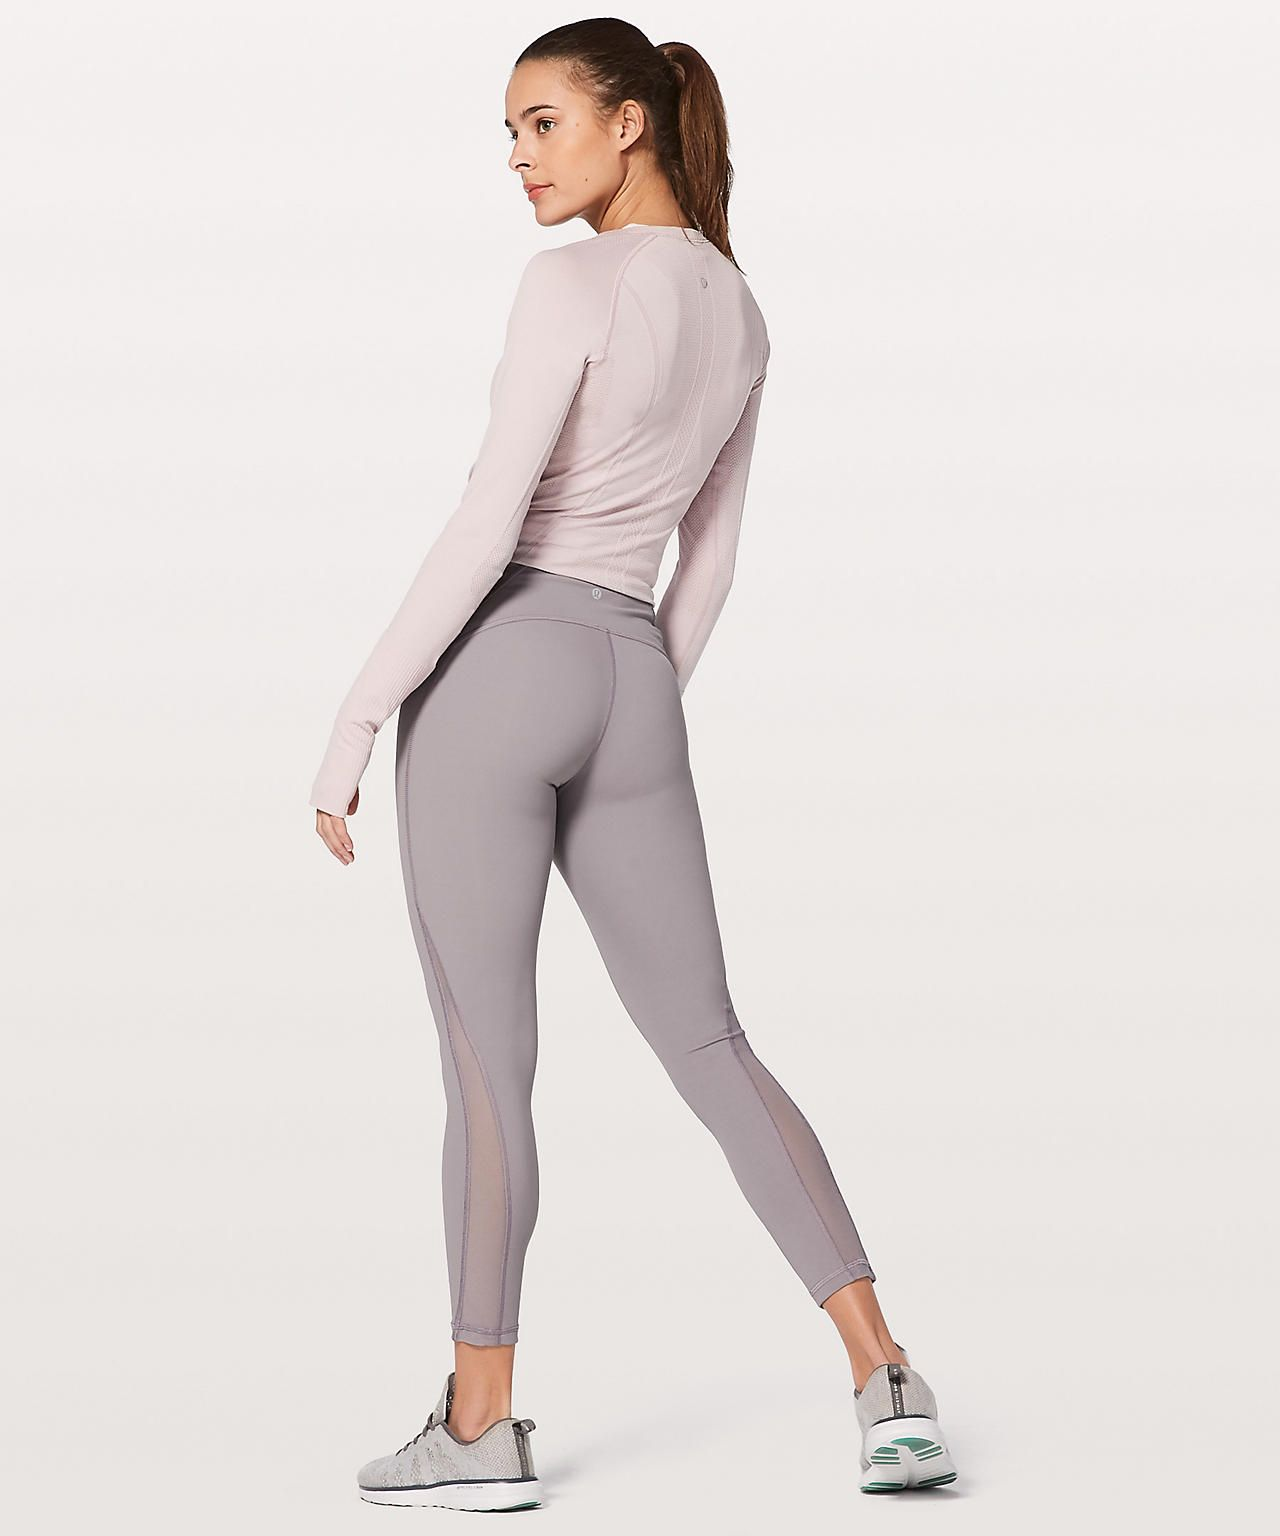 Dusty Dawn Pants For Women Technical Clothing Athletic Apparel